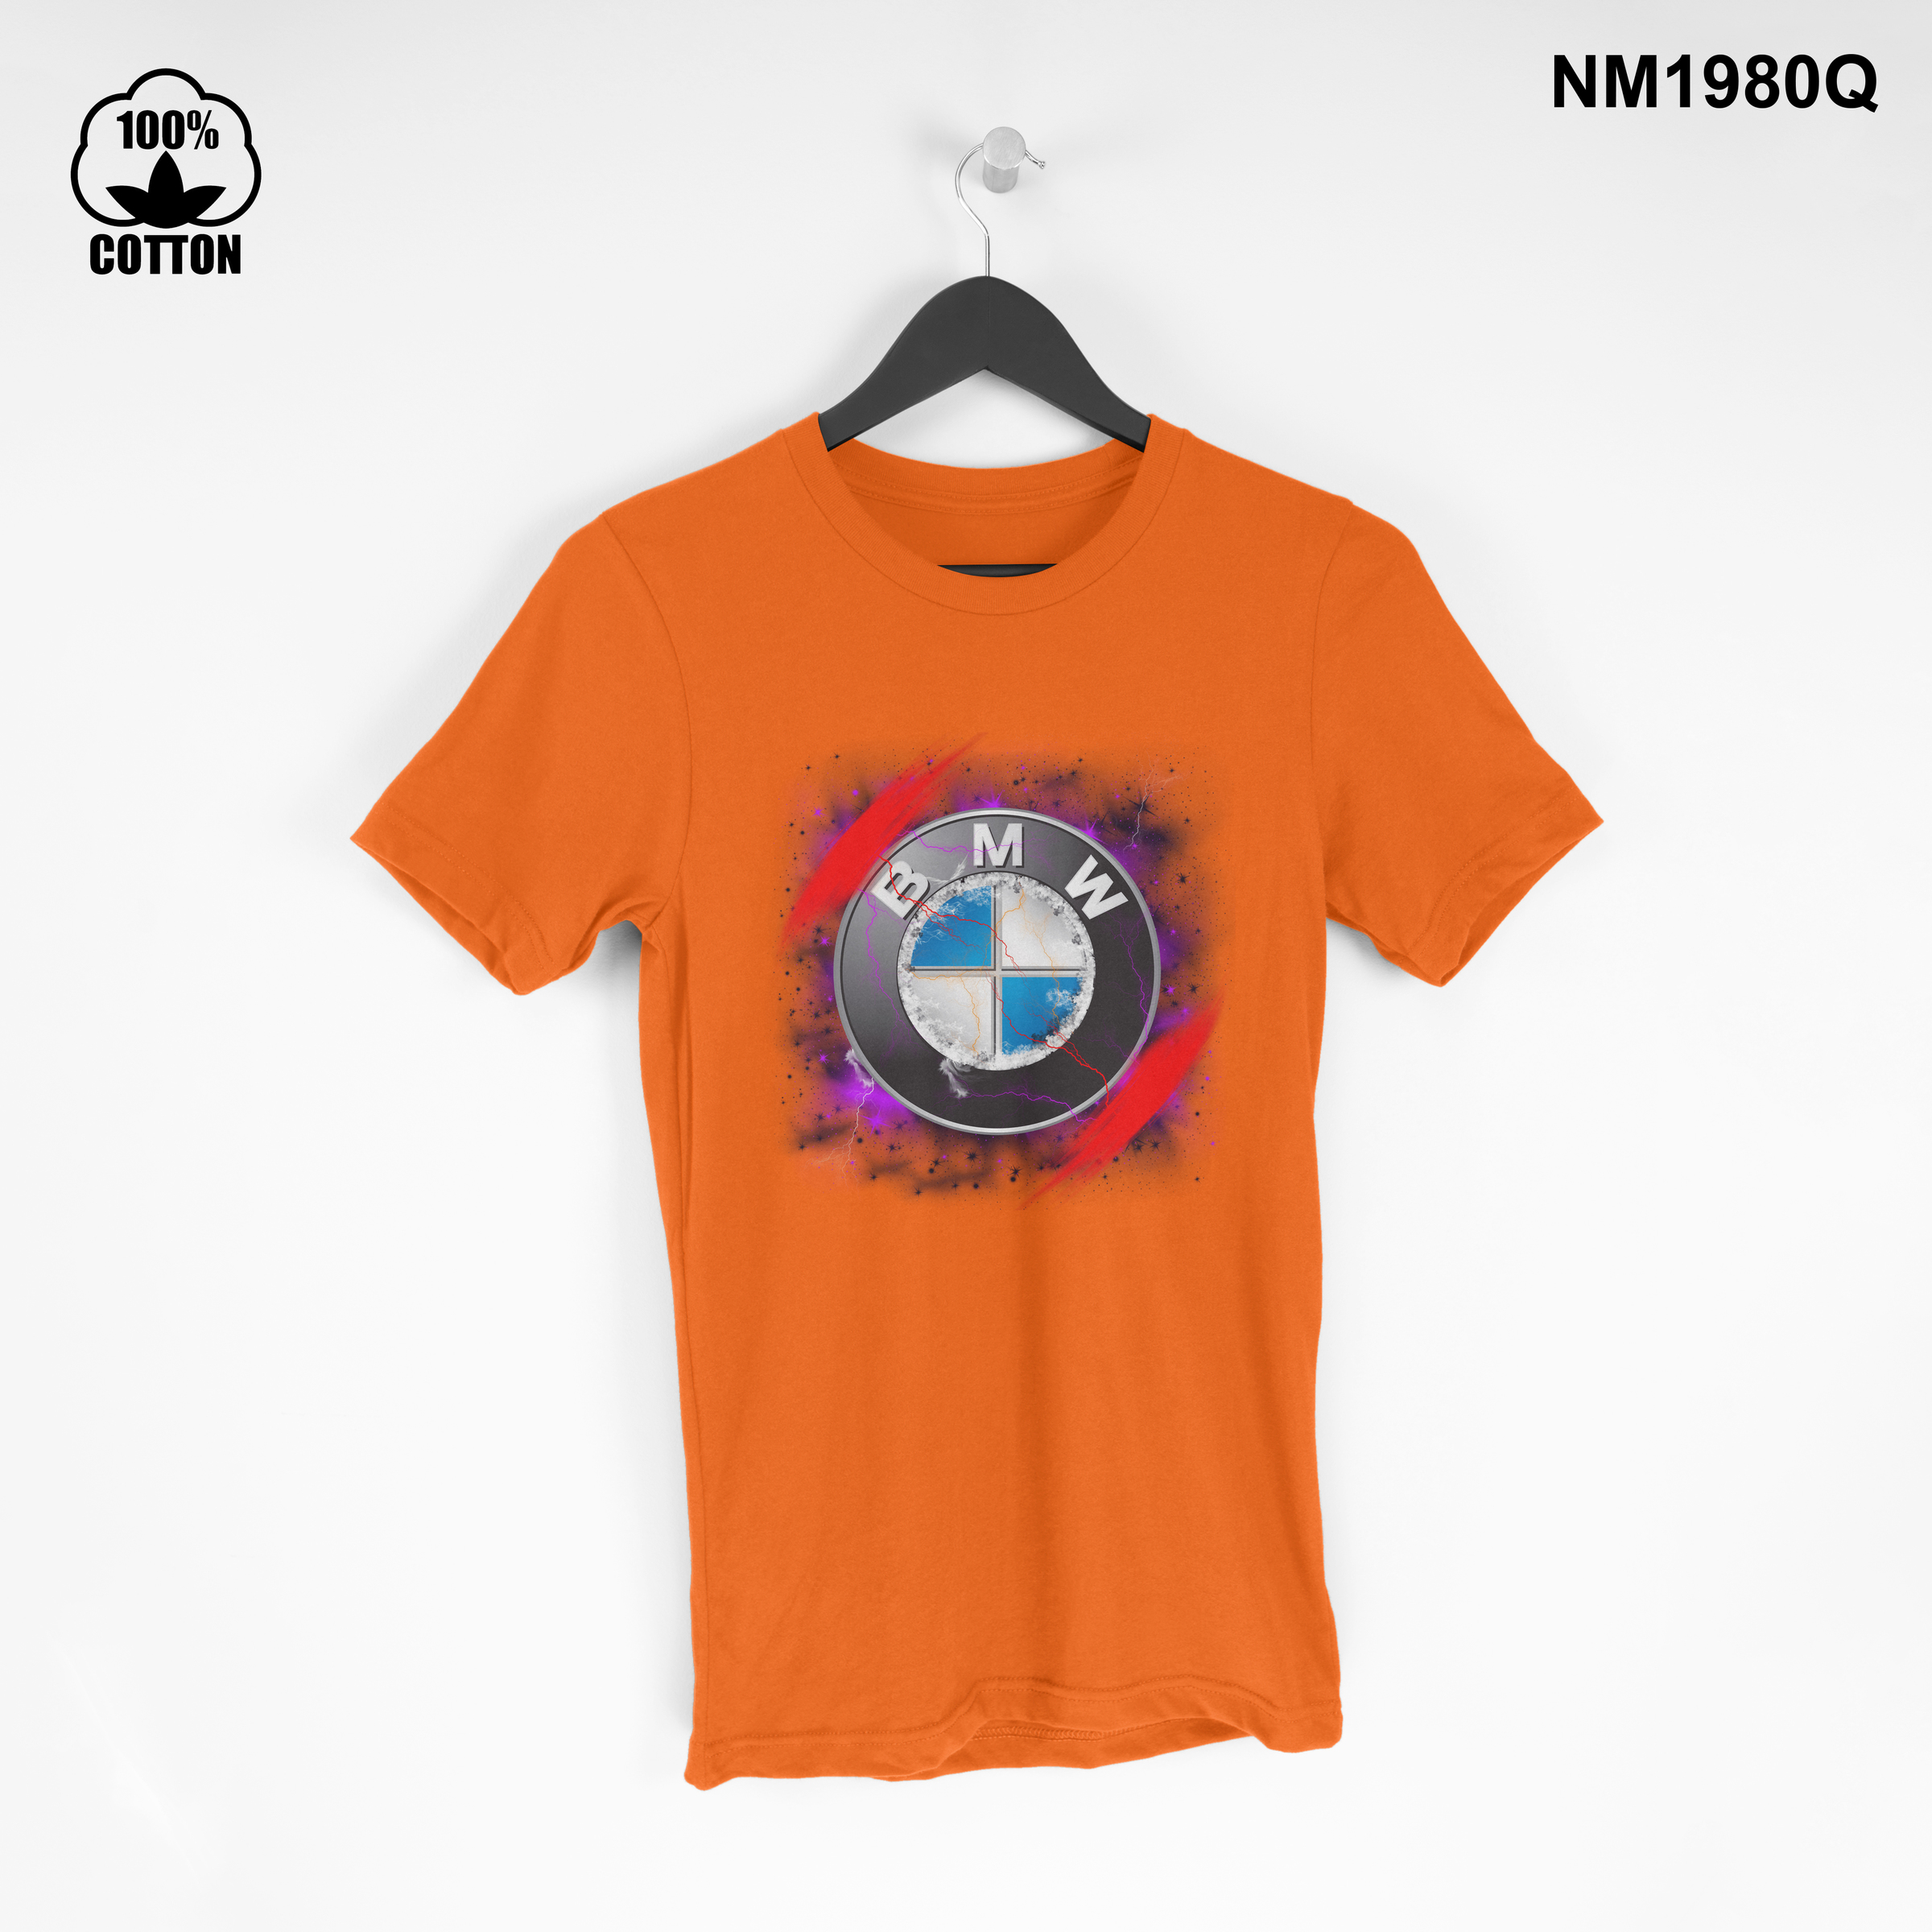 1.47 Rare Iitem BMW space New Design T Shirt Tee Unisex orange.jpg